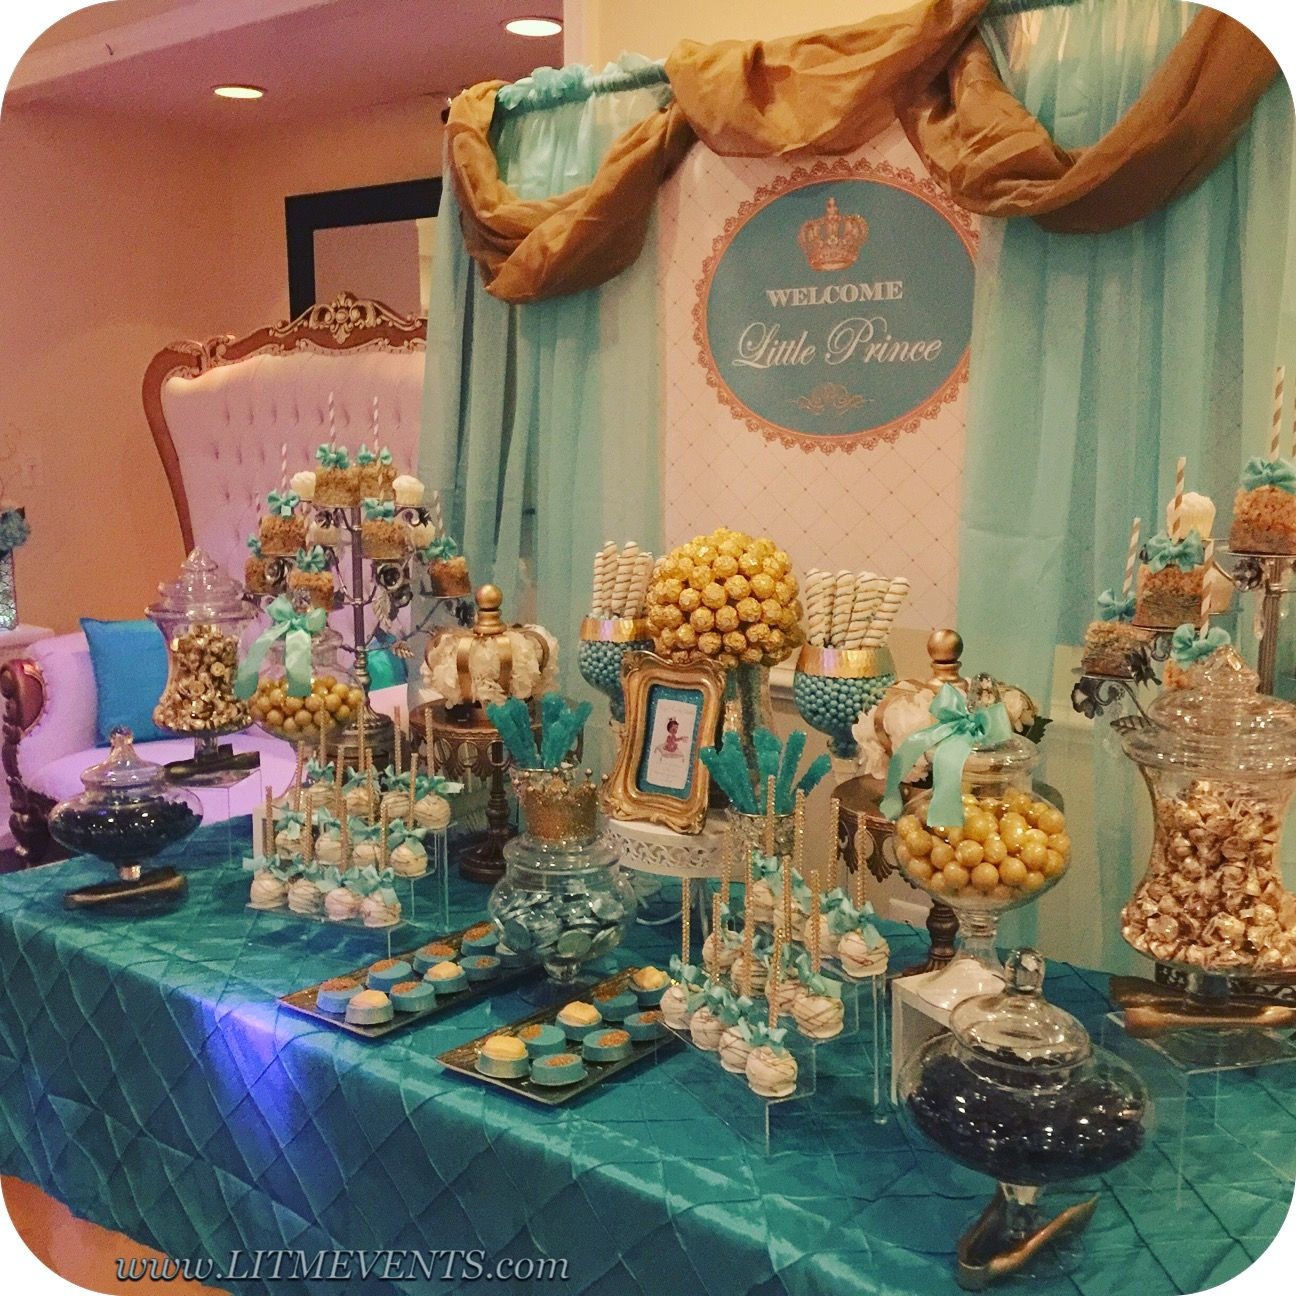 Candy For Baby Shower Ideas: Royal Candy Buffet, Little Prince Baby Shower, Royal